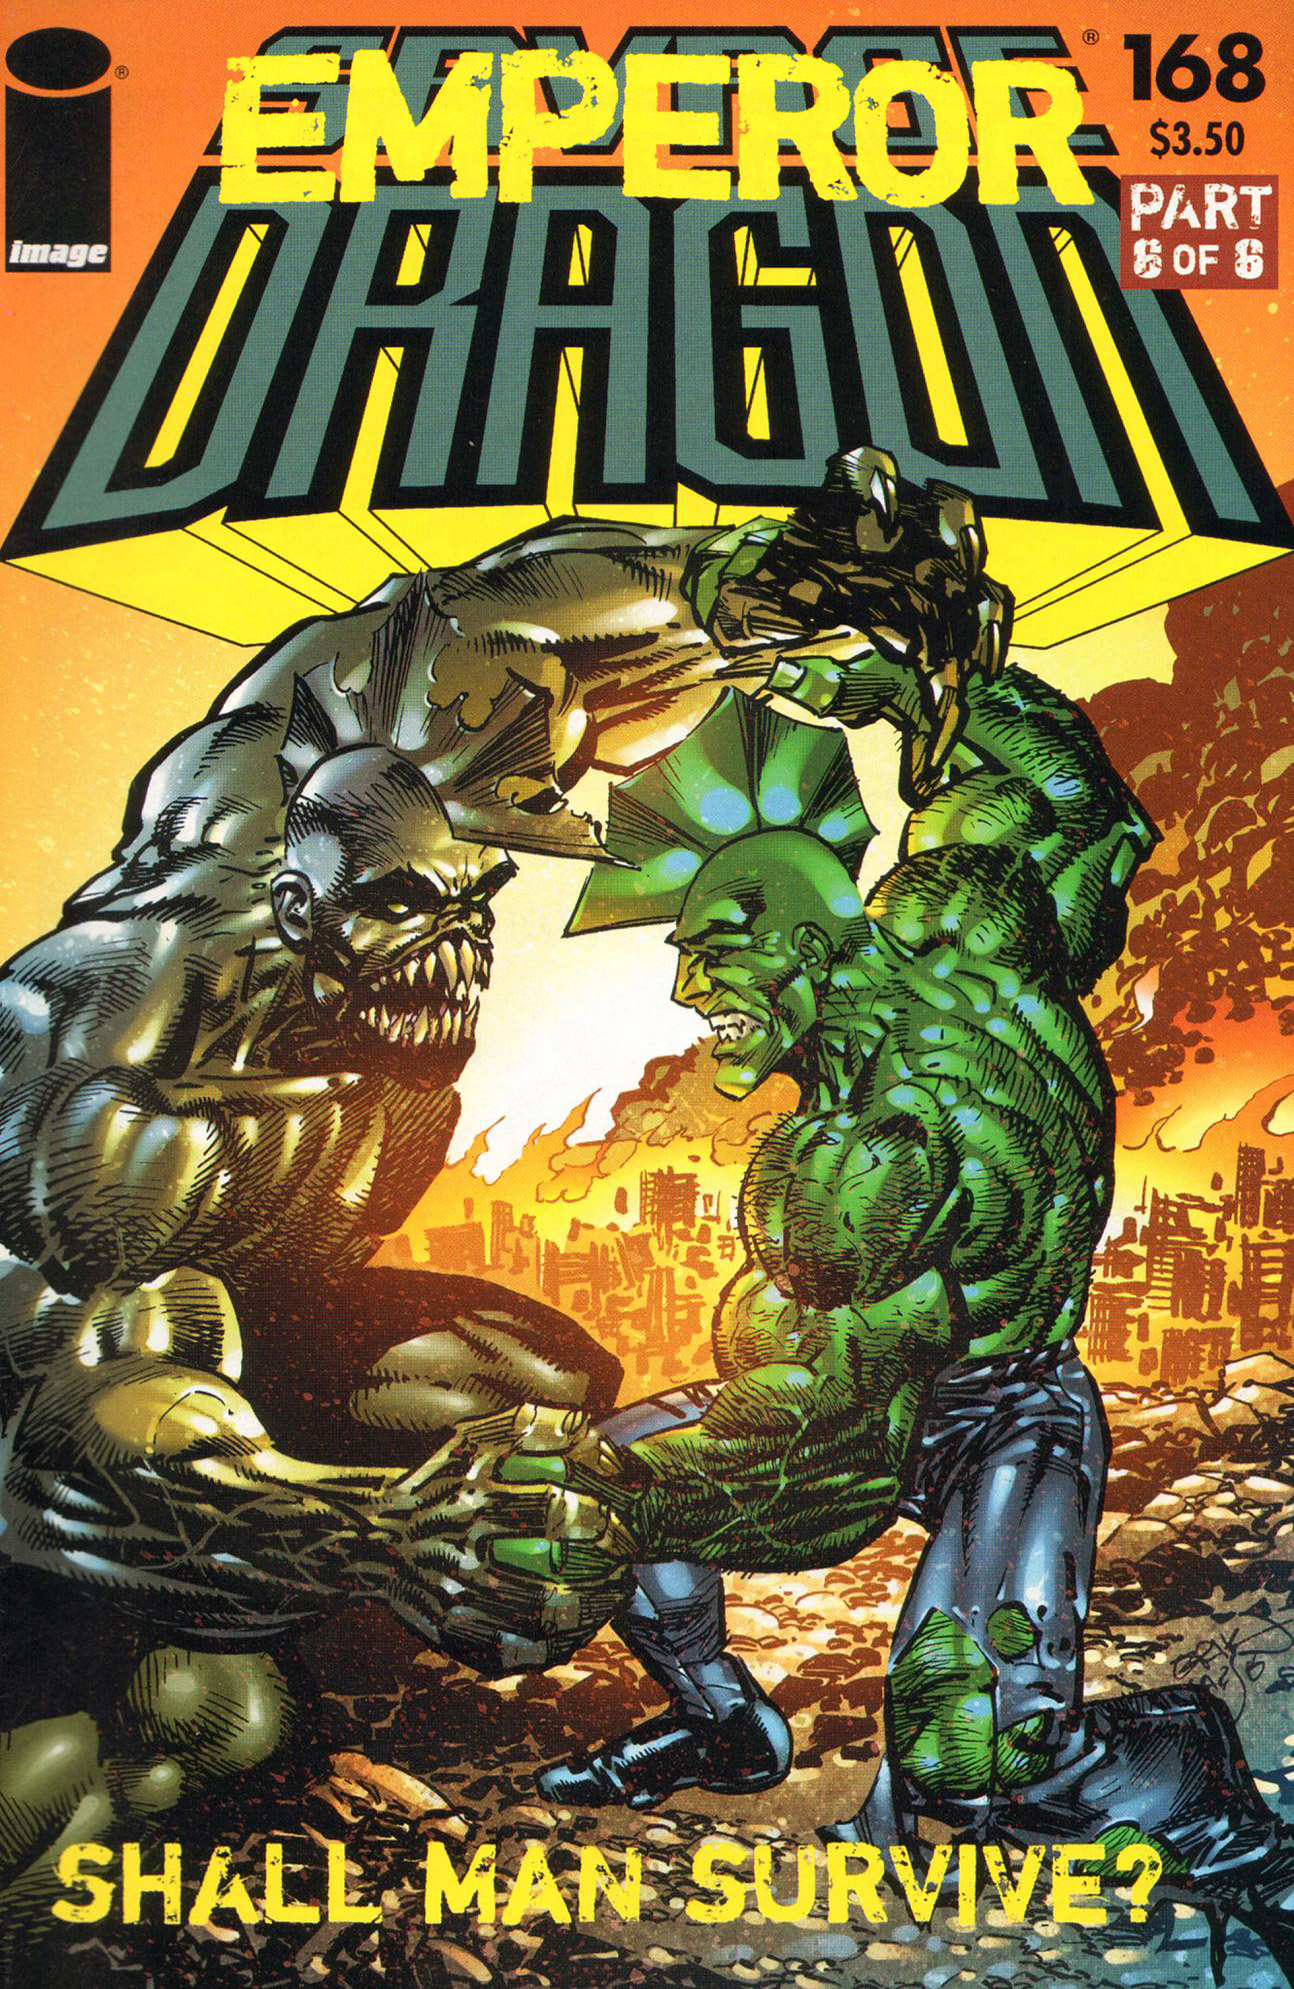 Cover Savage Dragon Vol.2 #168